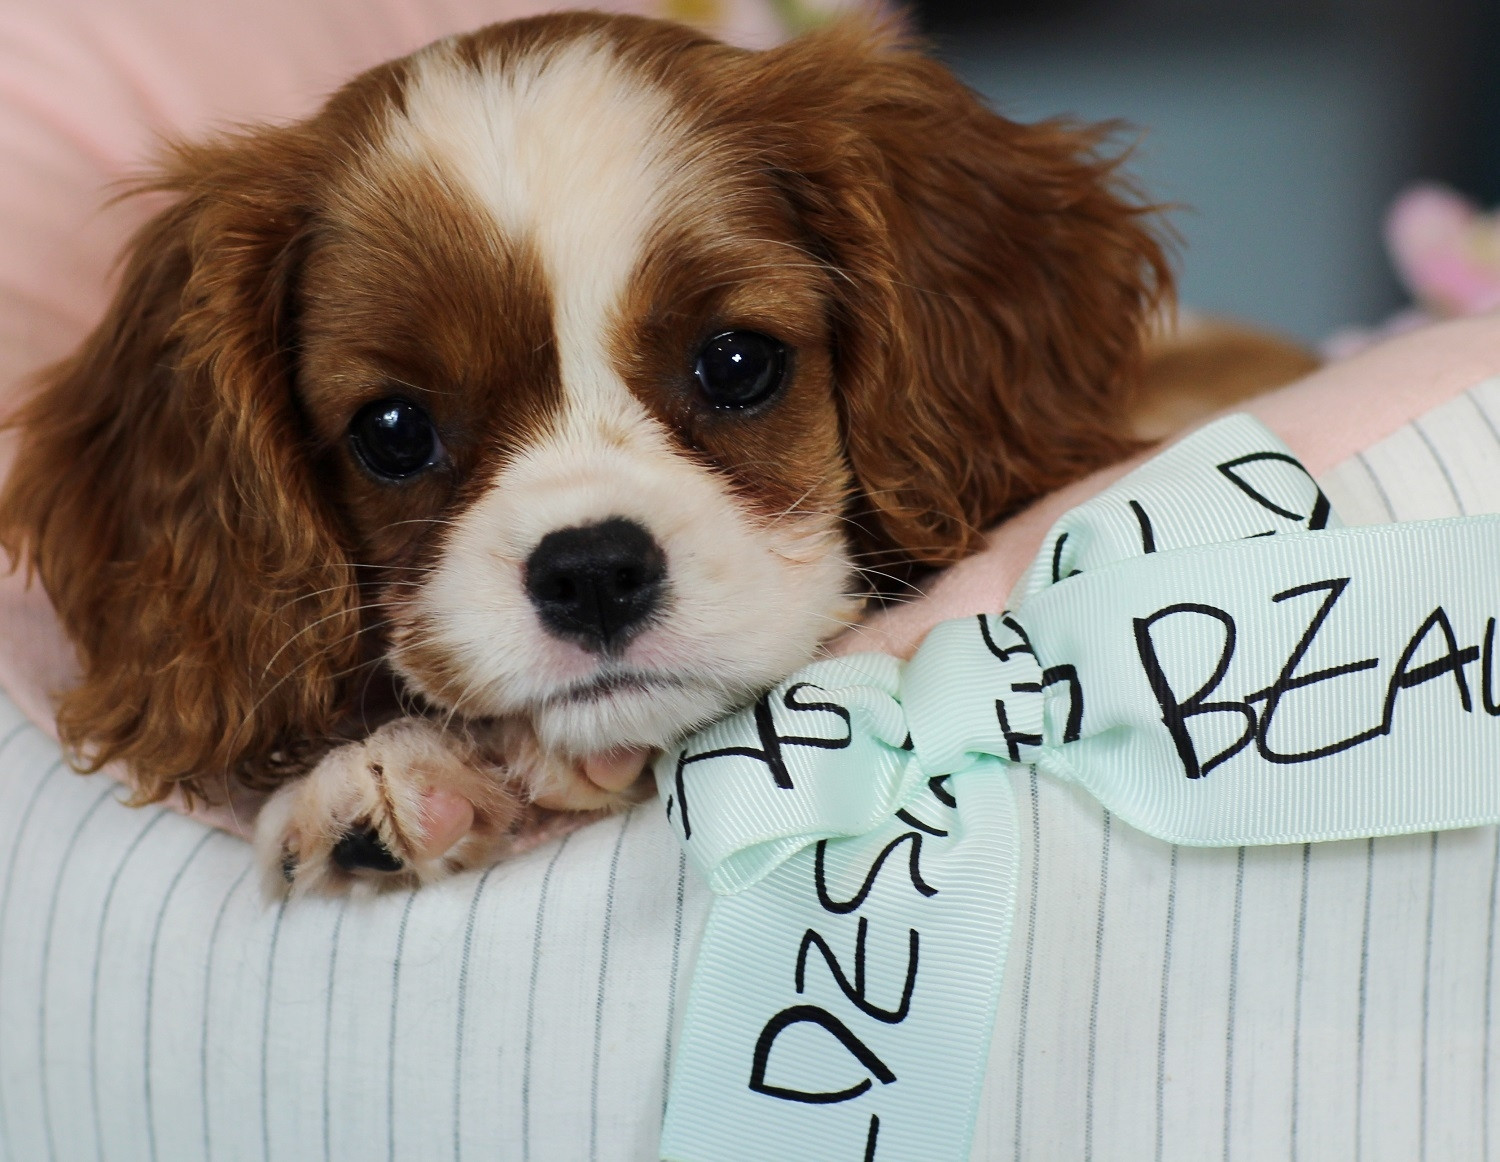 Cavalier King Charles Spaniel Puppies For Sale | Fort Lauderdale. FL #247197